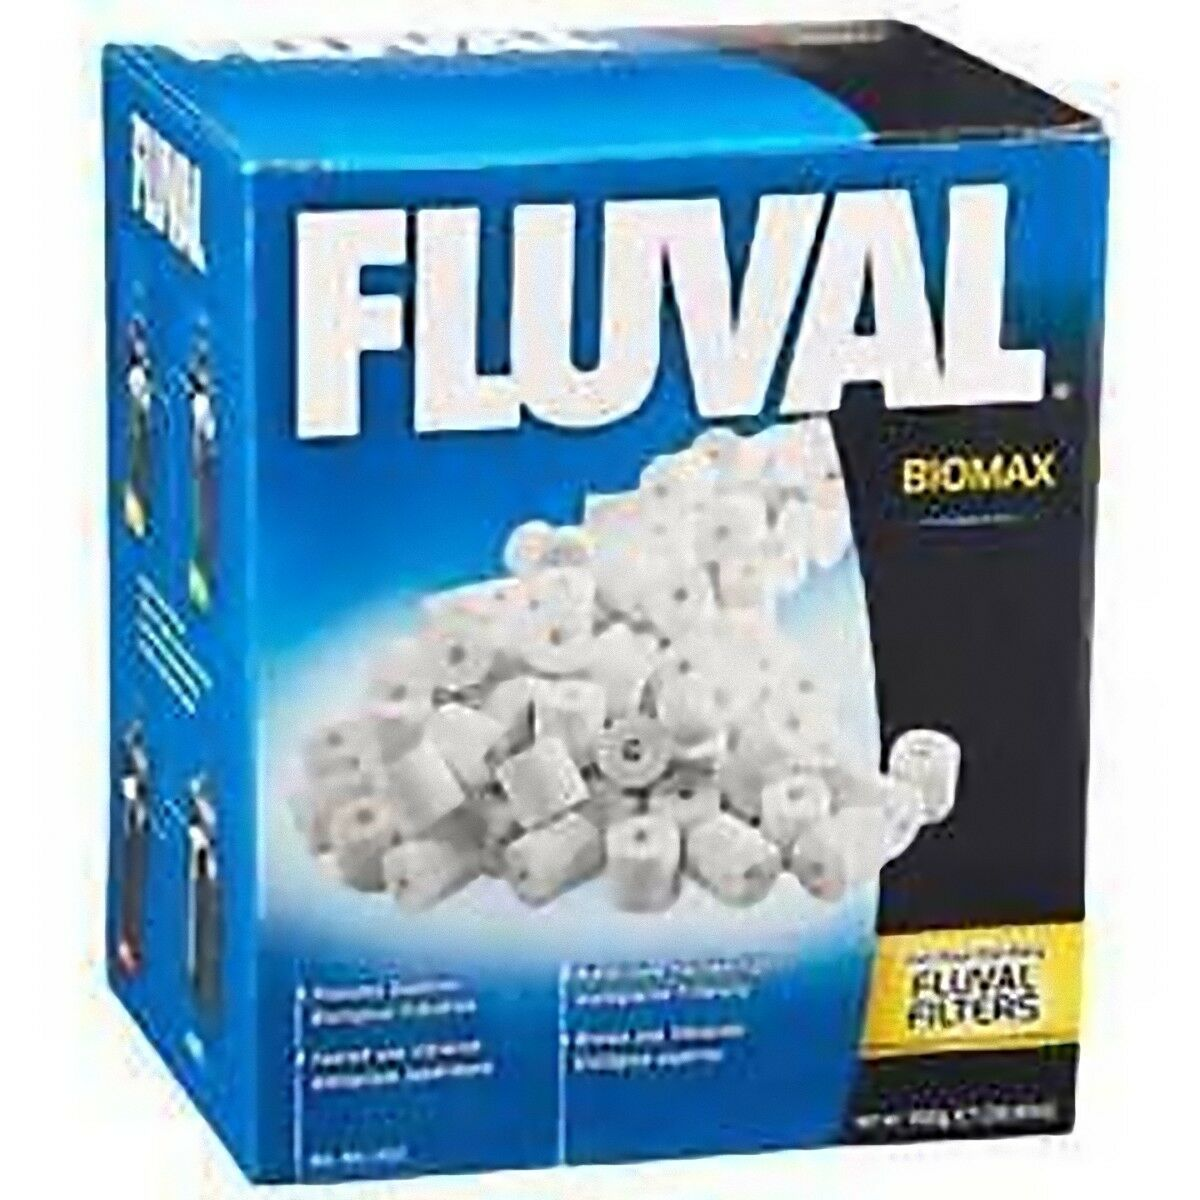 Fluval Biomax 500g Biological Aquarium Filter Media